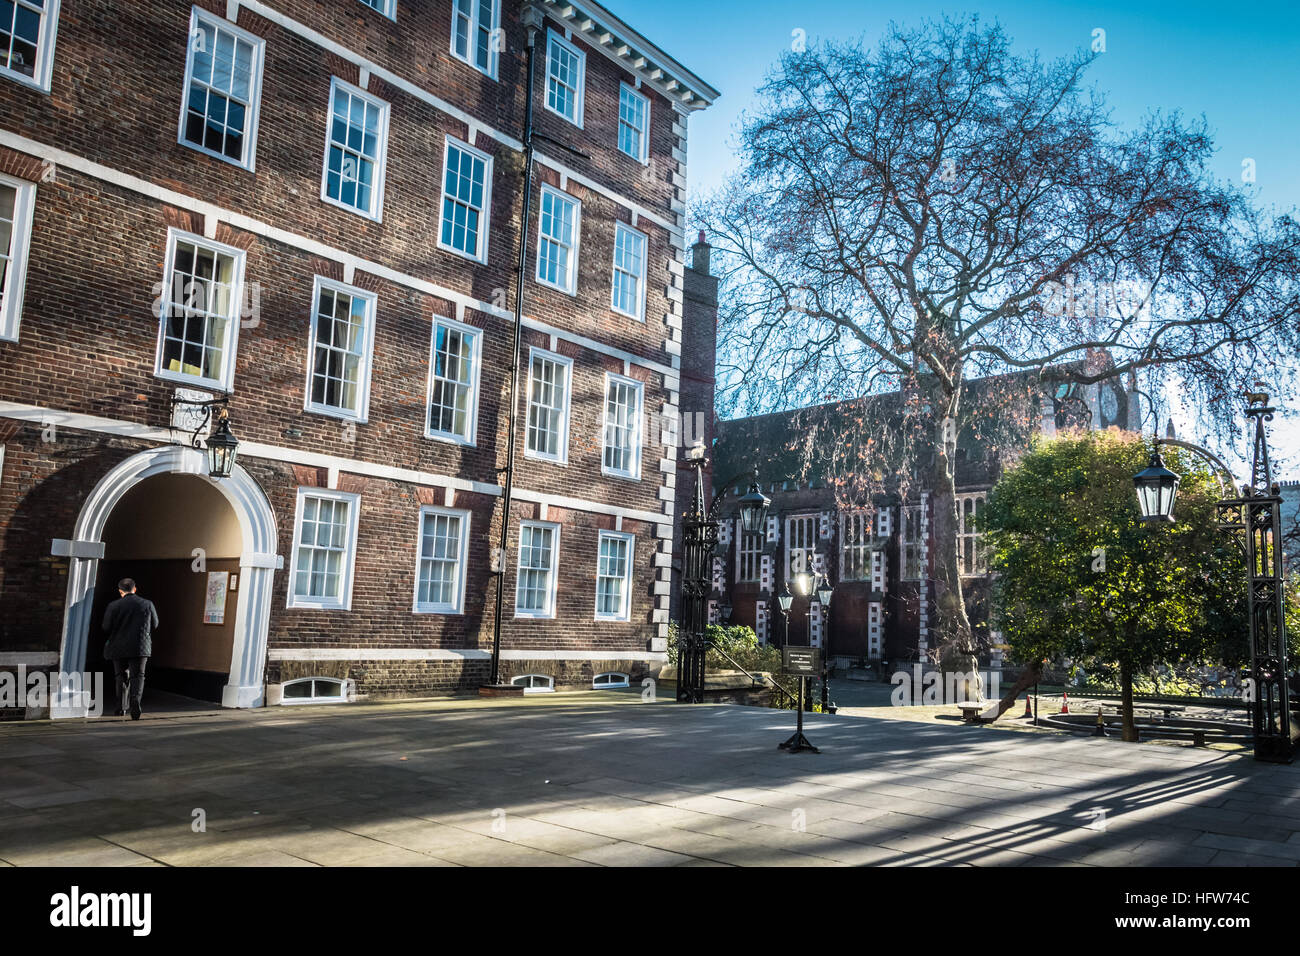 Middle Temple Hall, Inns of Court, London, UK, Stock Photo